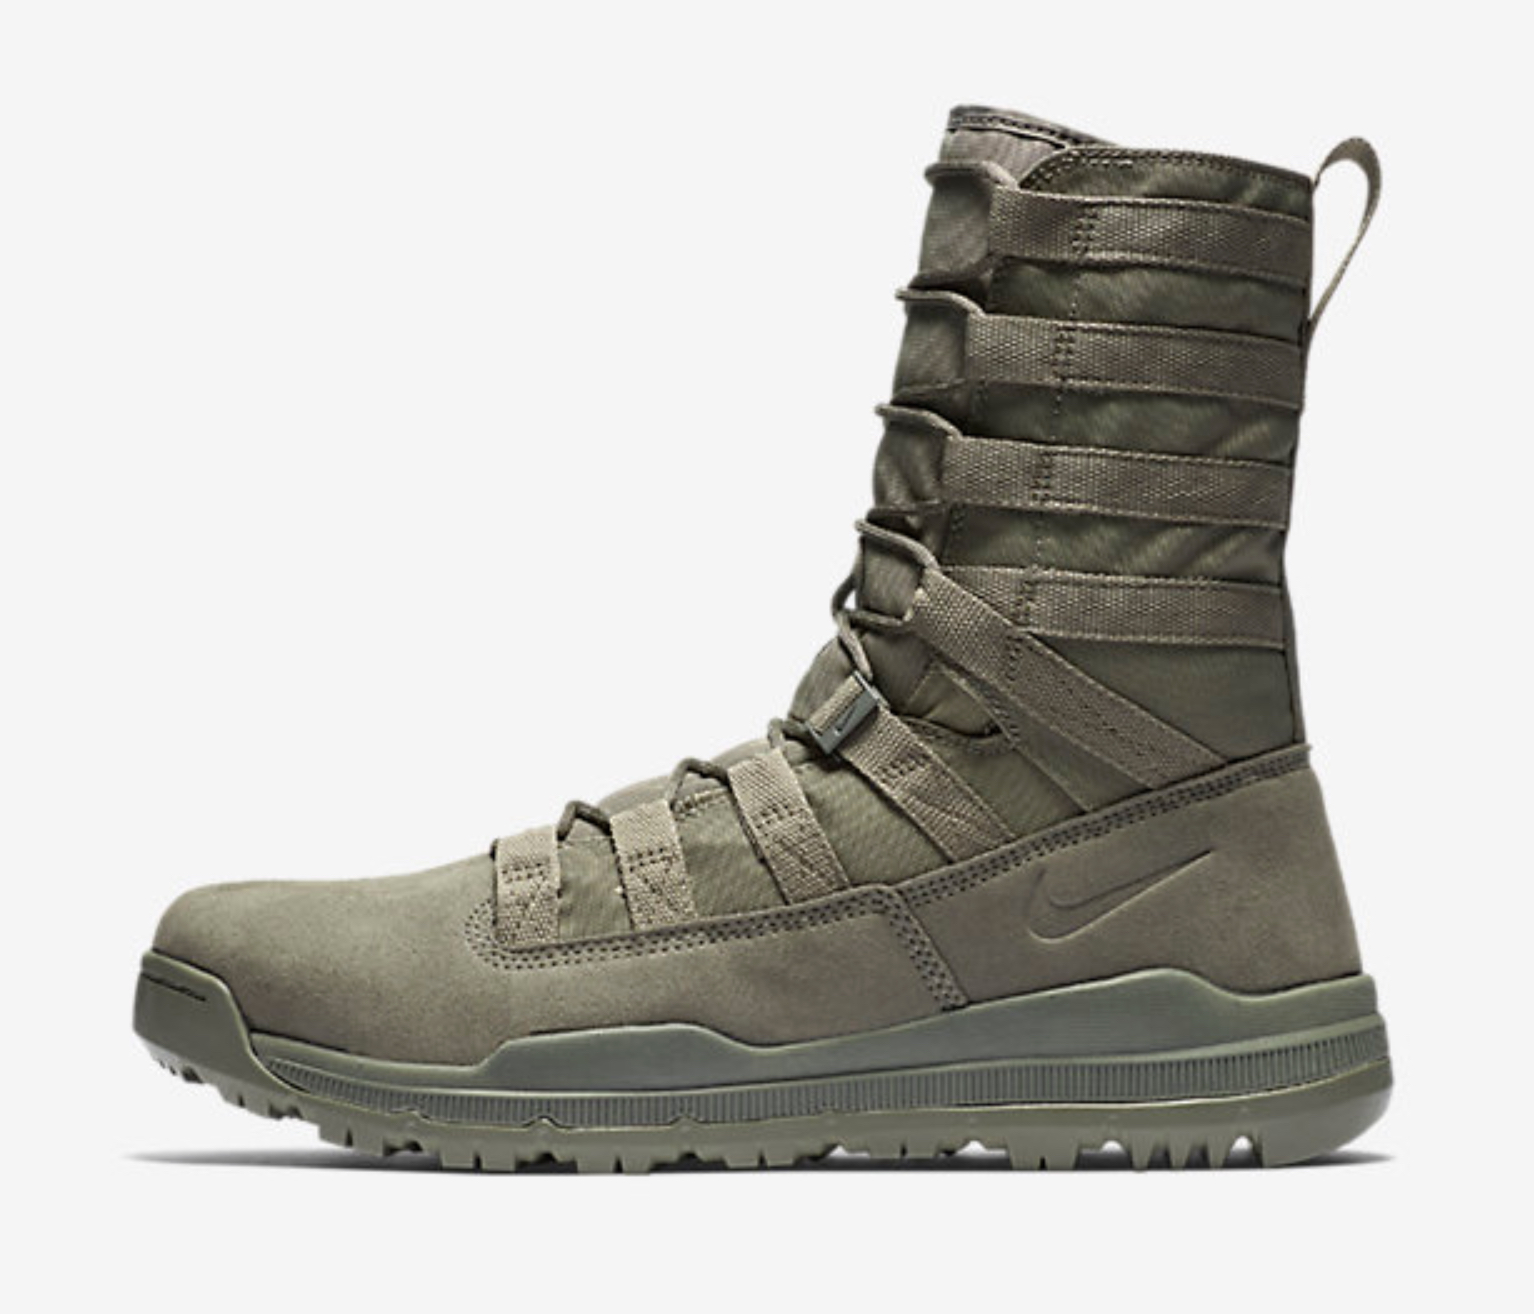 Nike S Sfb Gen 2 8 Quot Boot Is Here In Three Colorways For